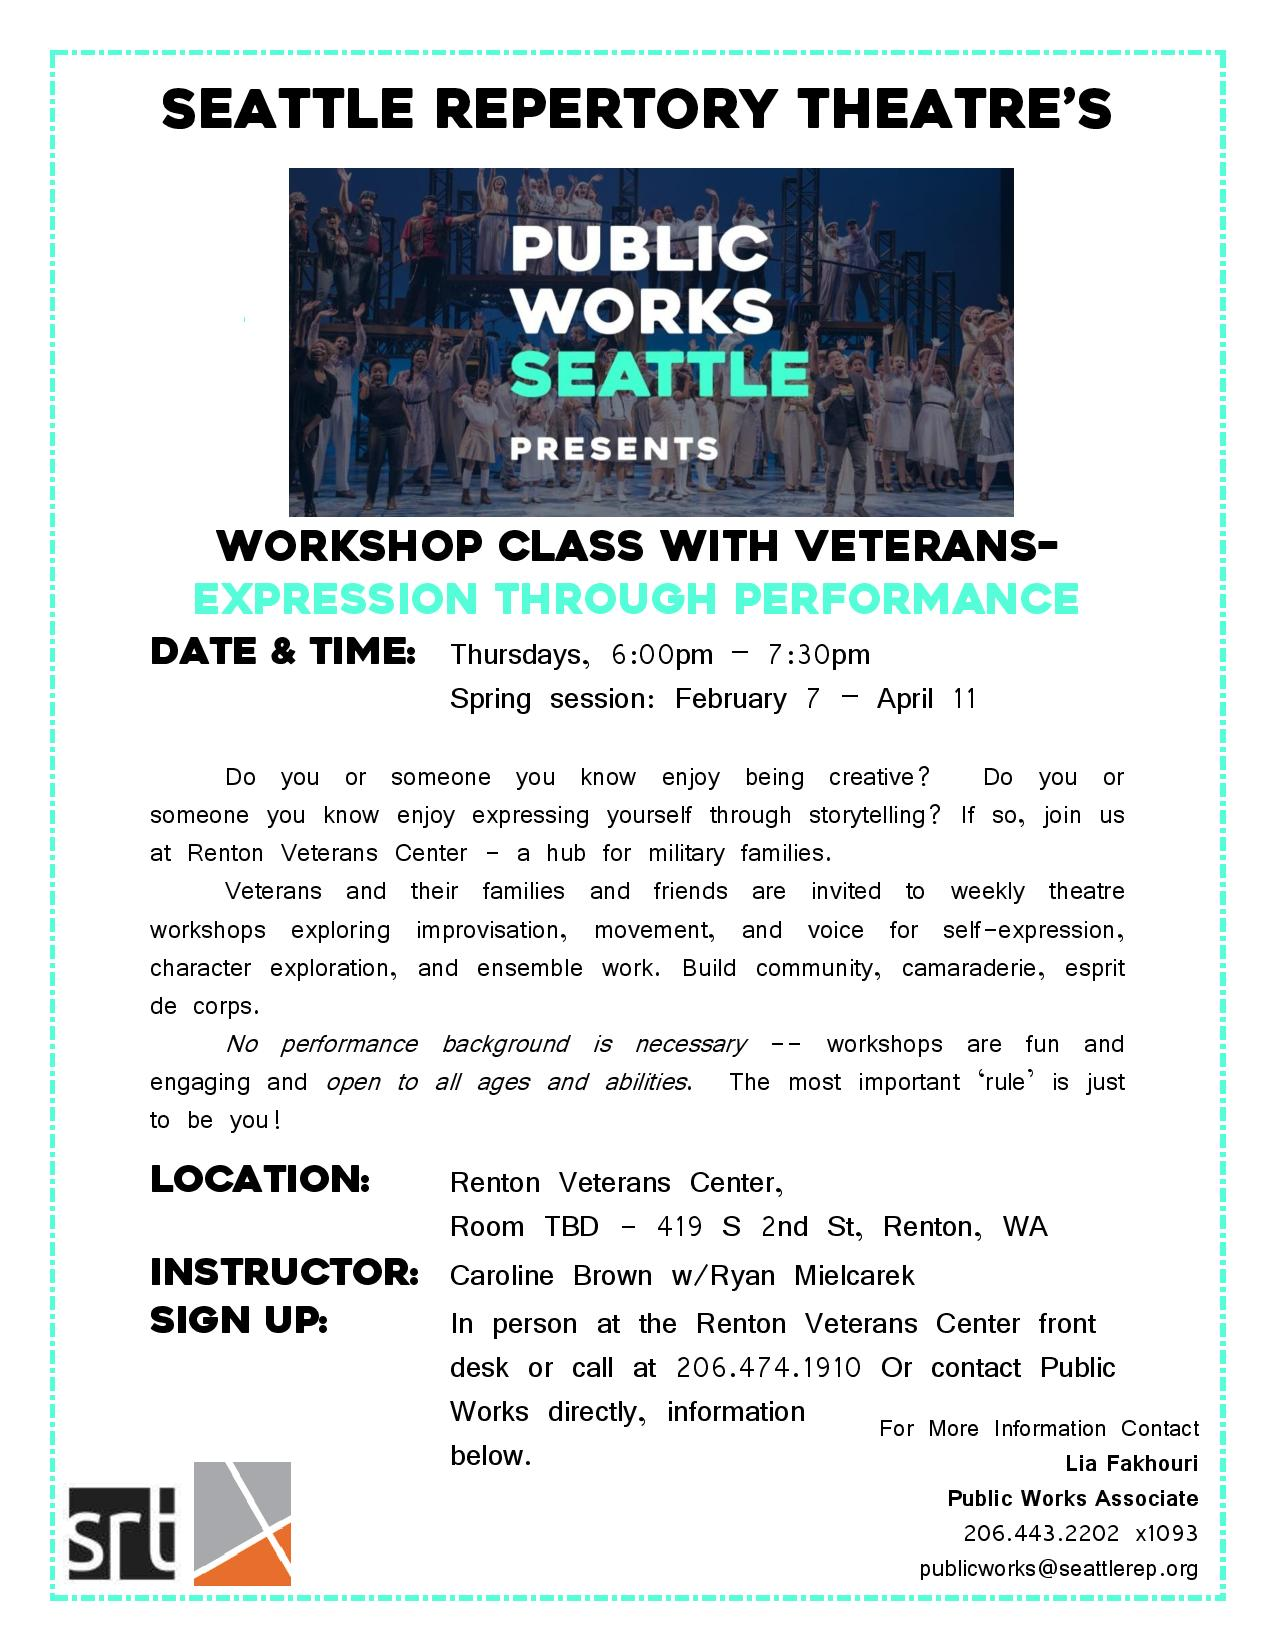 Acting Workshops for Veterans and Families with Seattle Rep Public